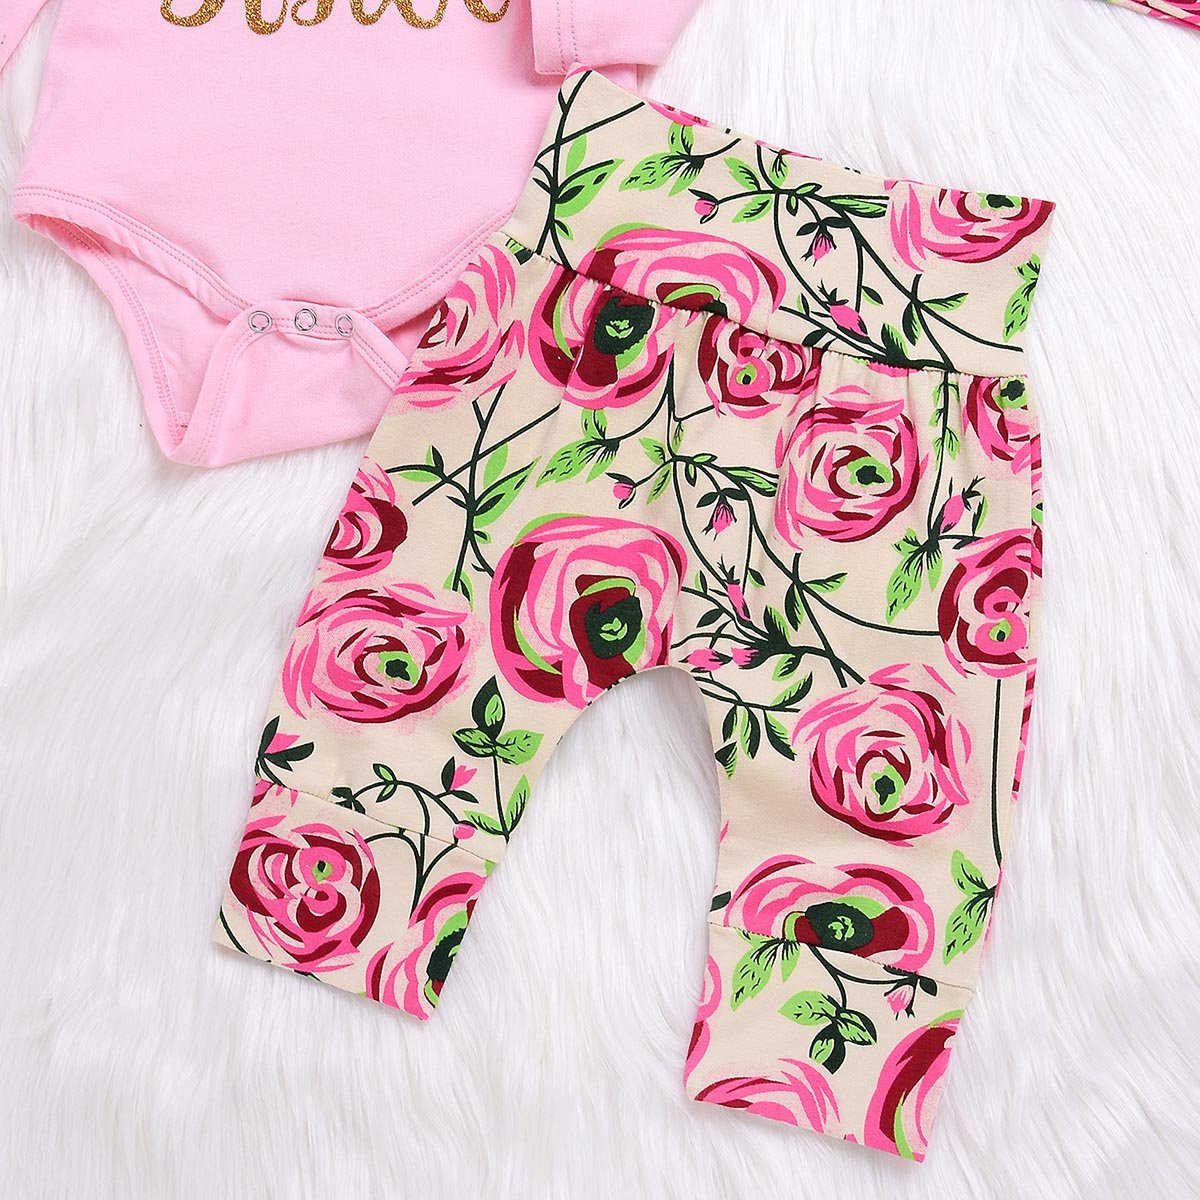 Camidy 4Pcs Baby Girl Little Sister Rose Flower Outfits Romper+Pants+Headband+Beanie